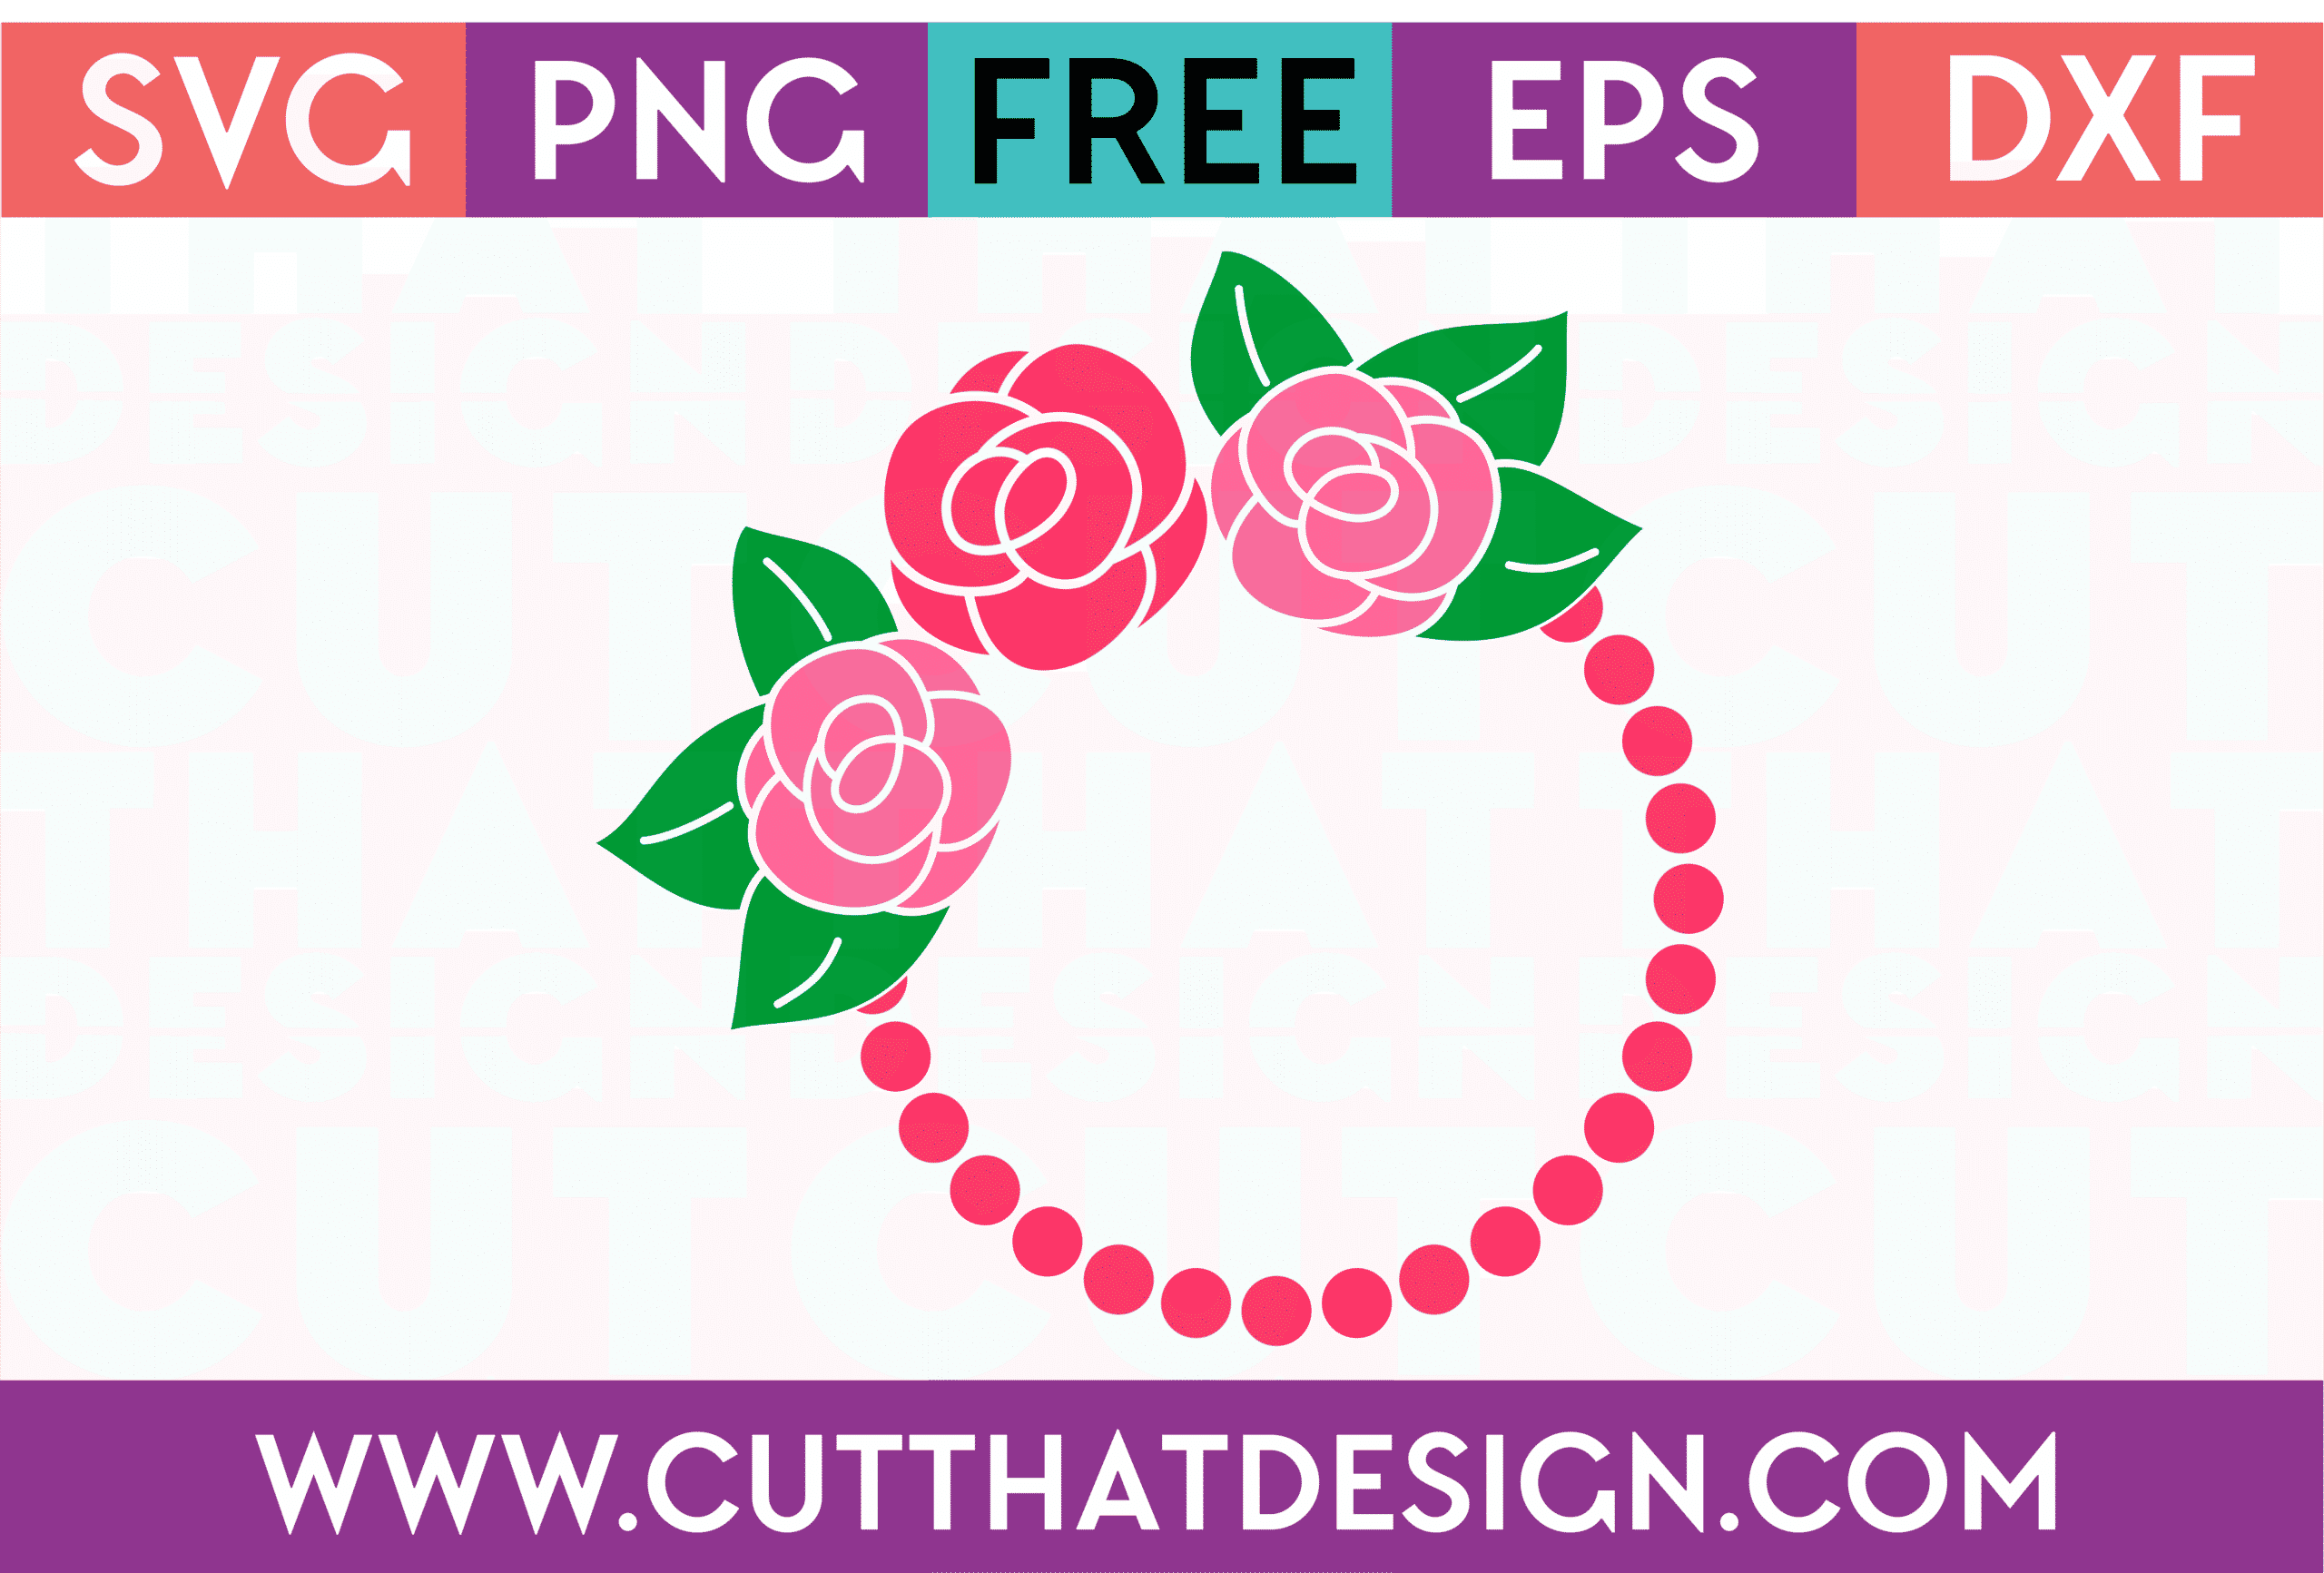 Free SVG Circle Frames for Silhouette Cameo